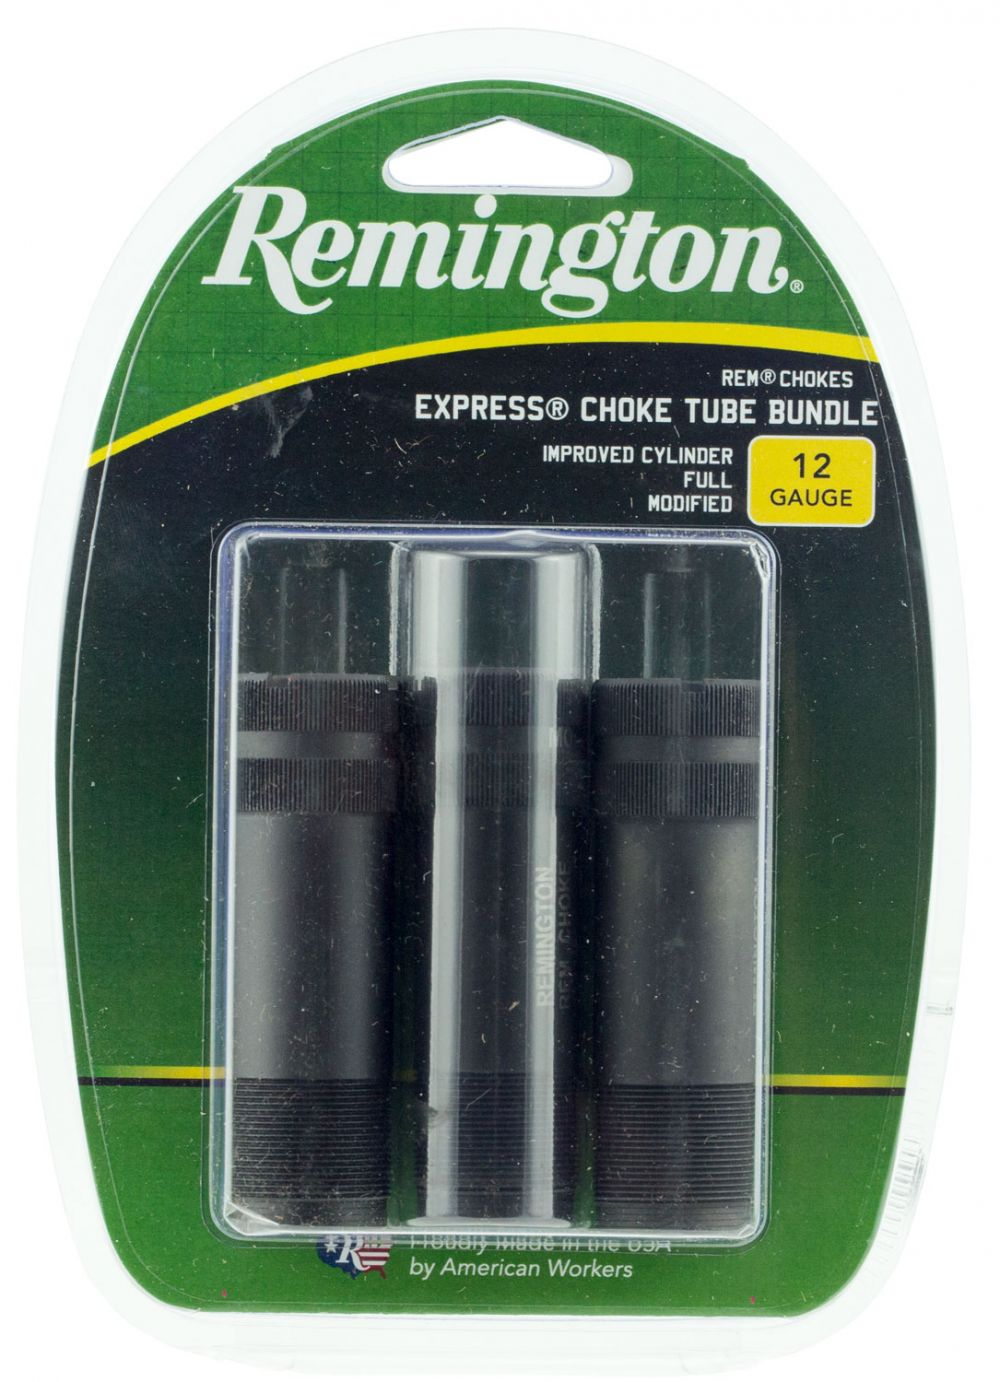 Remington Accessories 19149 Rem Choke 12 Gauge Improved  Cylinder/Full/Modified